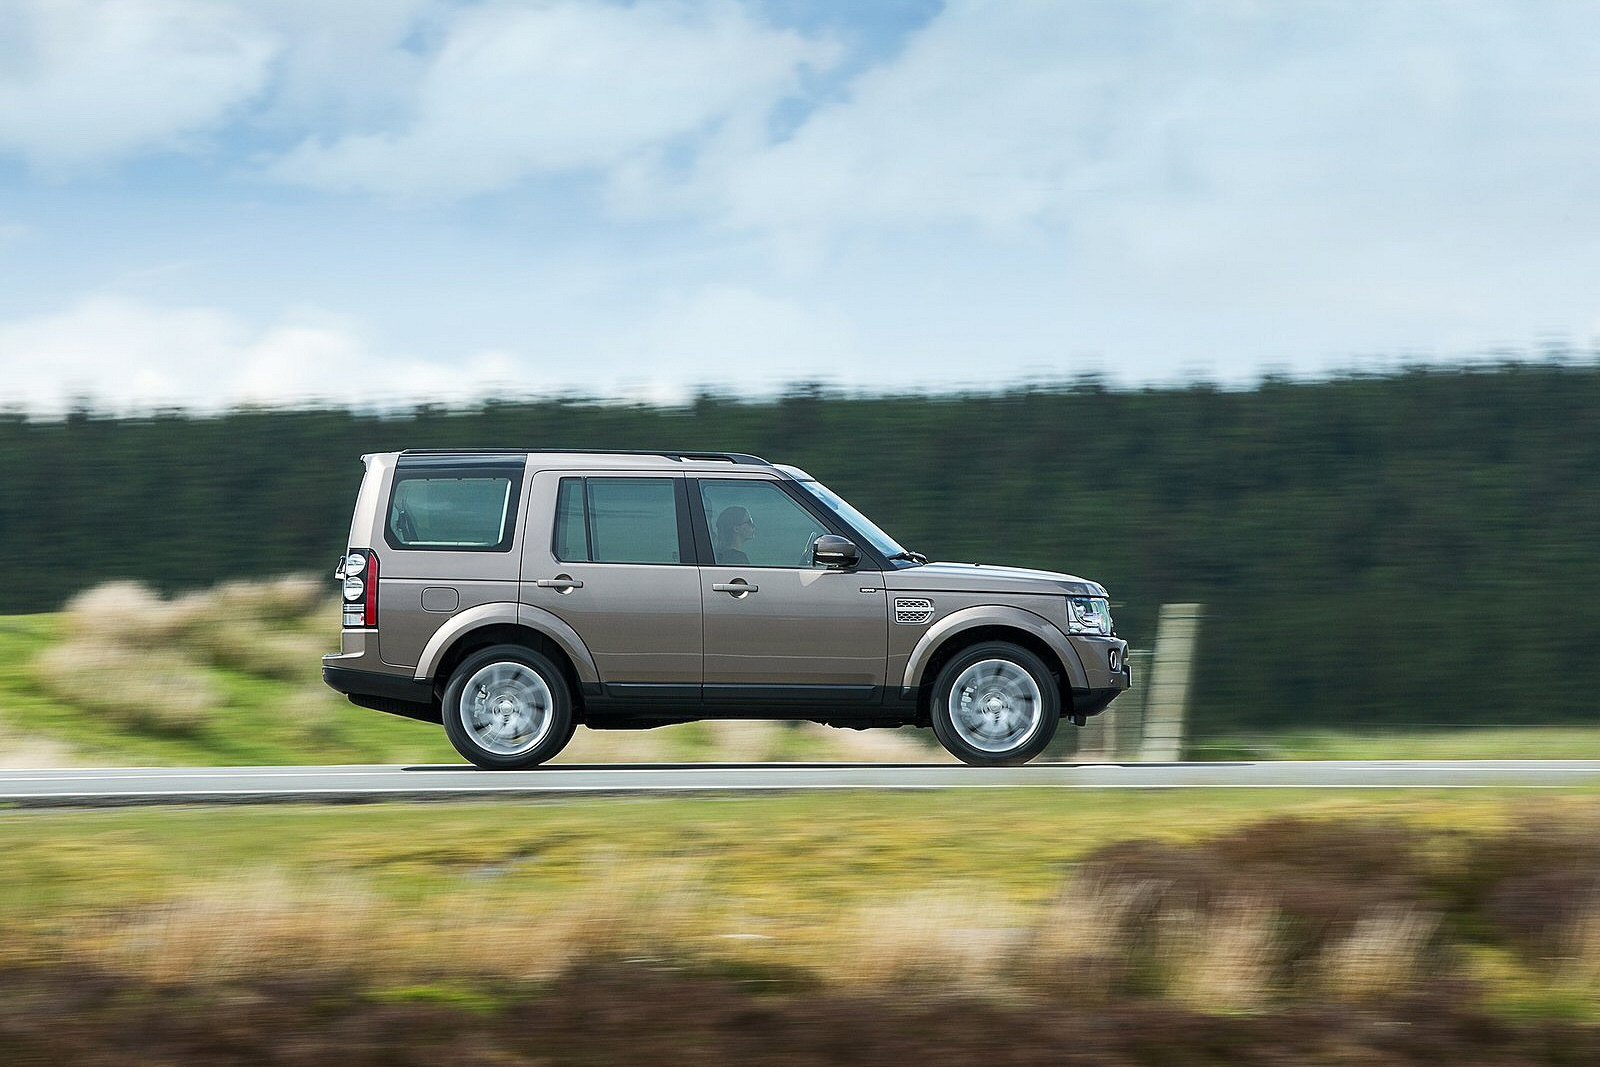 Image two of a Land Rover Discovery